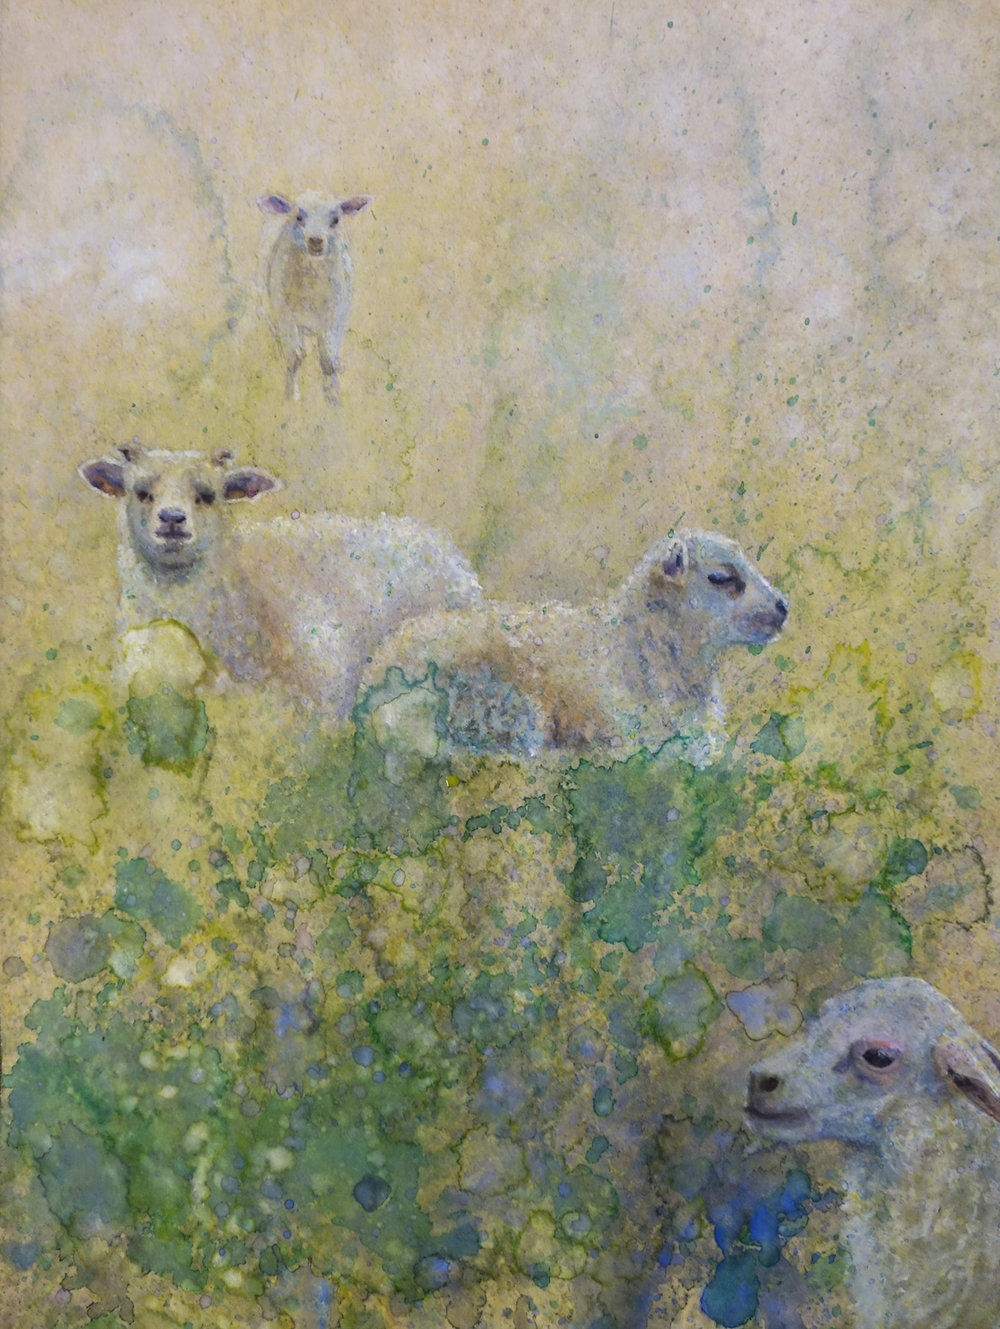 Lambs in Field - Watercolor on recycled paper, 12x9